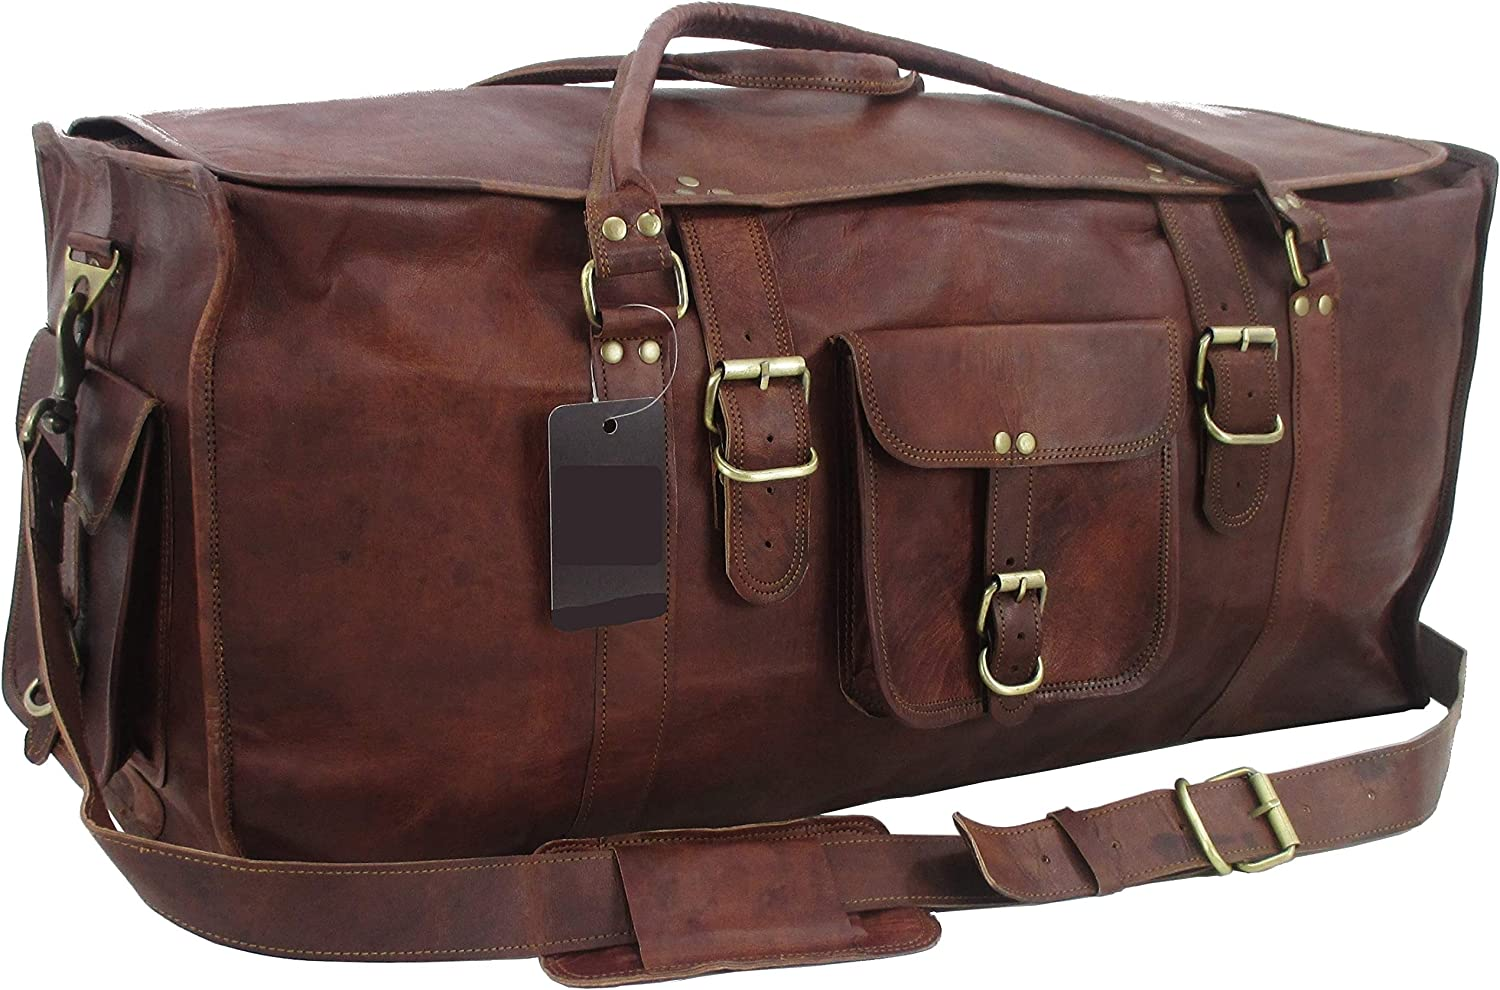 Yuge Bear 28 FS1 Vintage Style Genuine Leather Oversized Flap Duffel Travel Bag